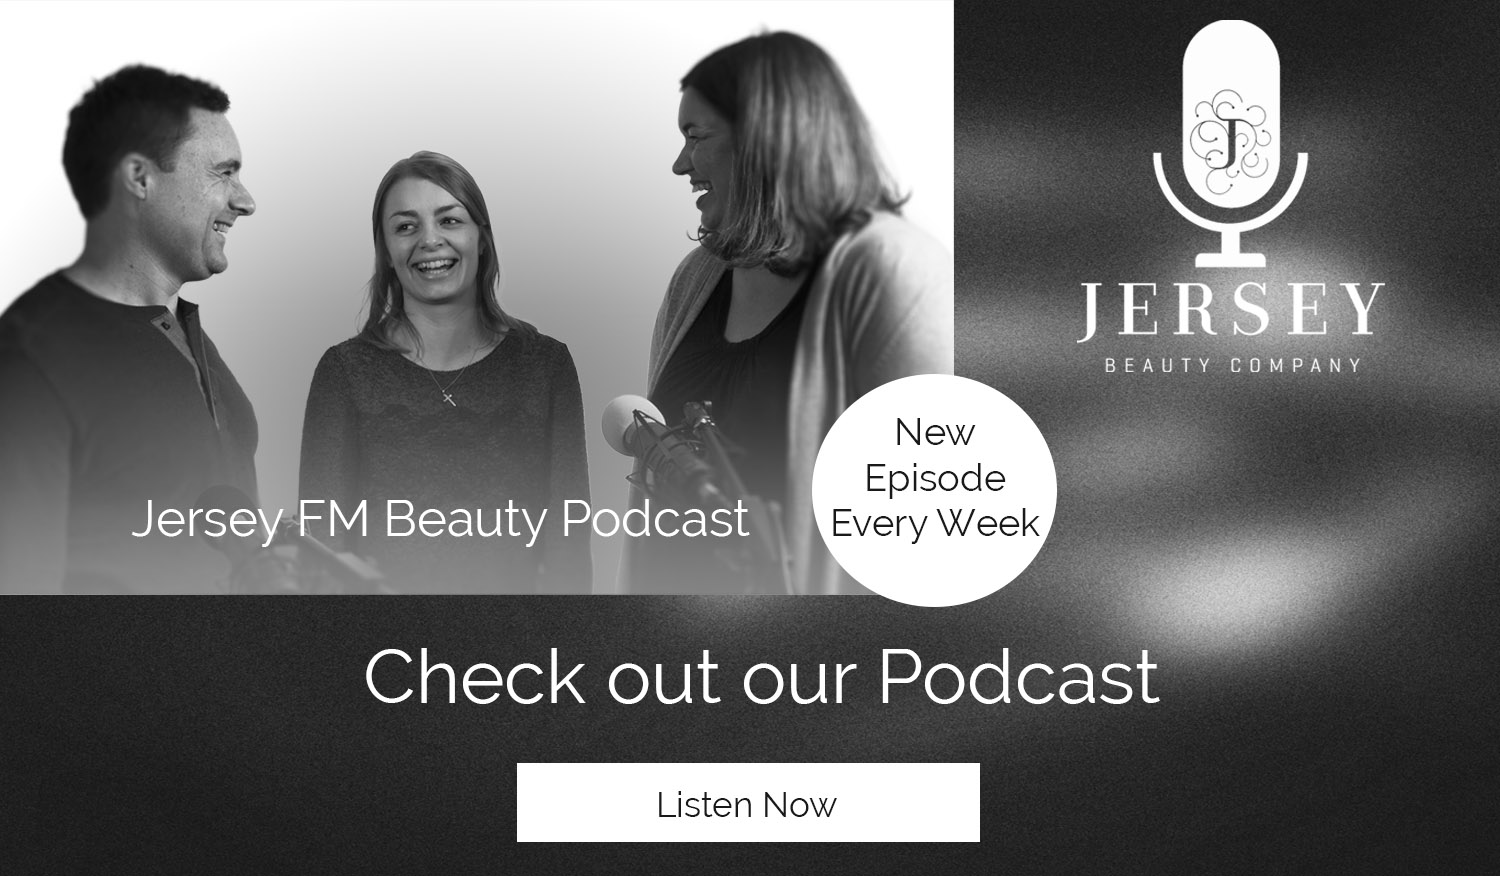 Juresy FM podcast Image photo-website Croped to Size 1500 - 876.jpg